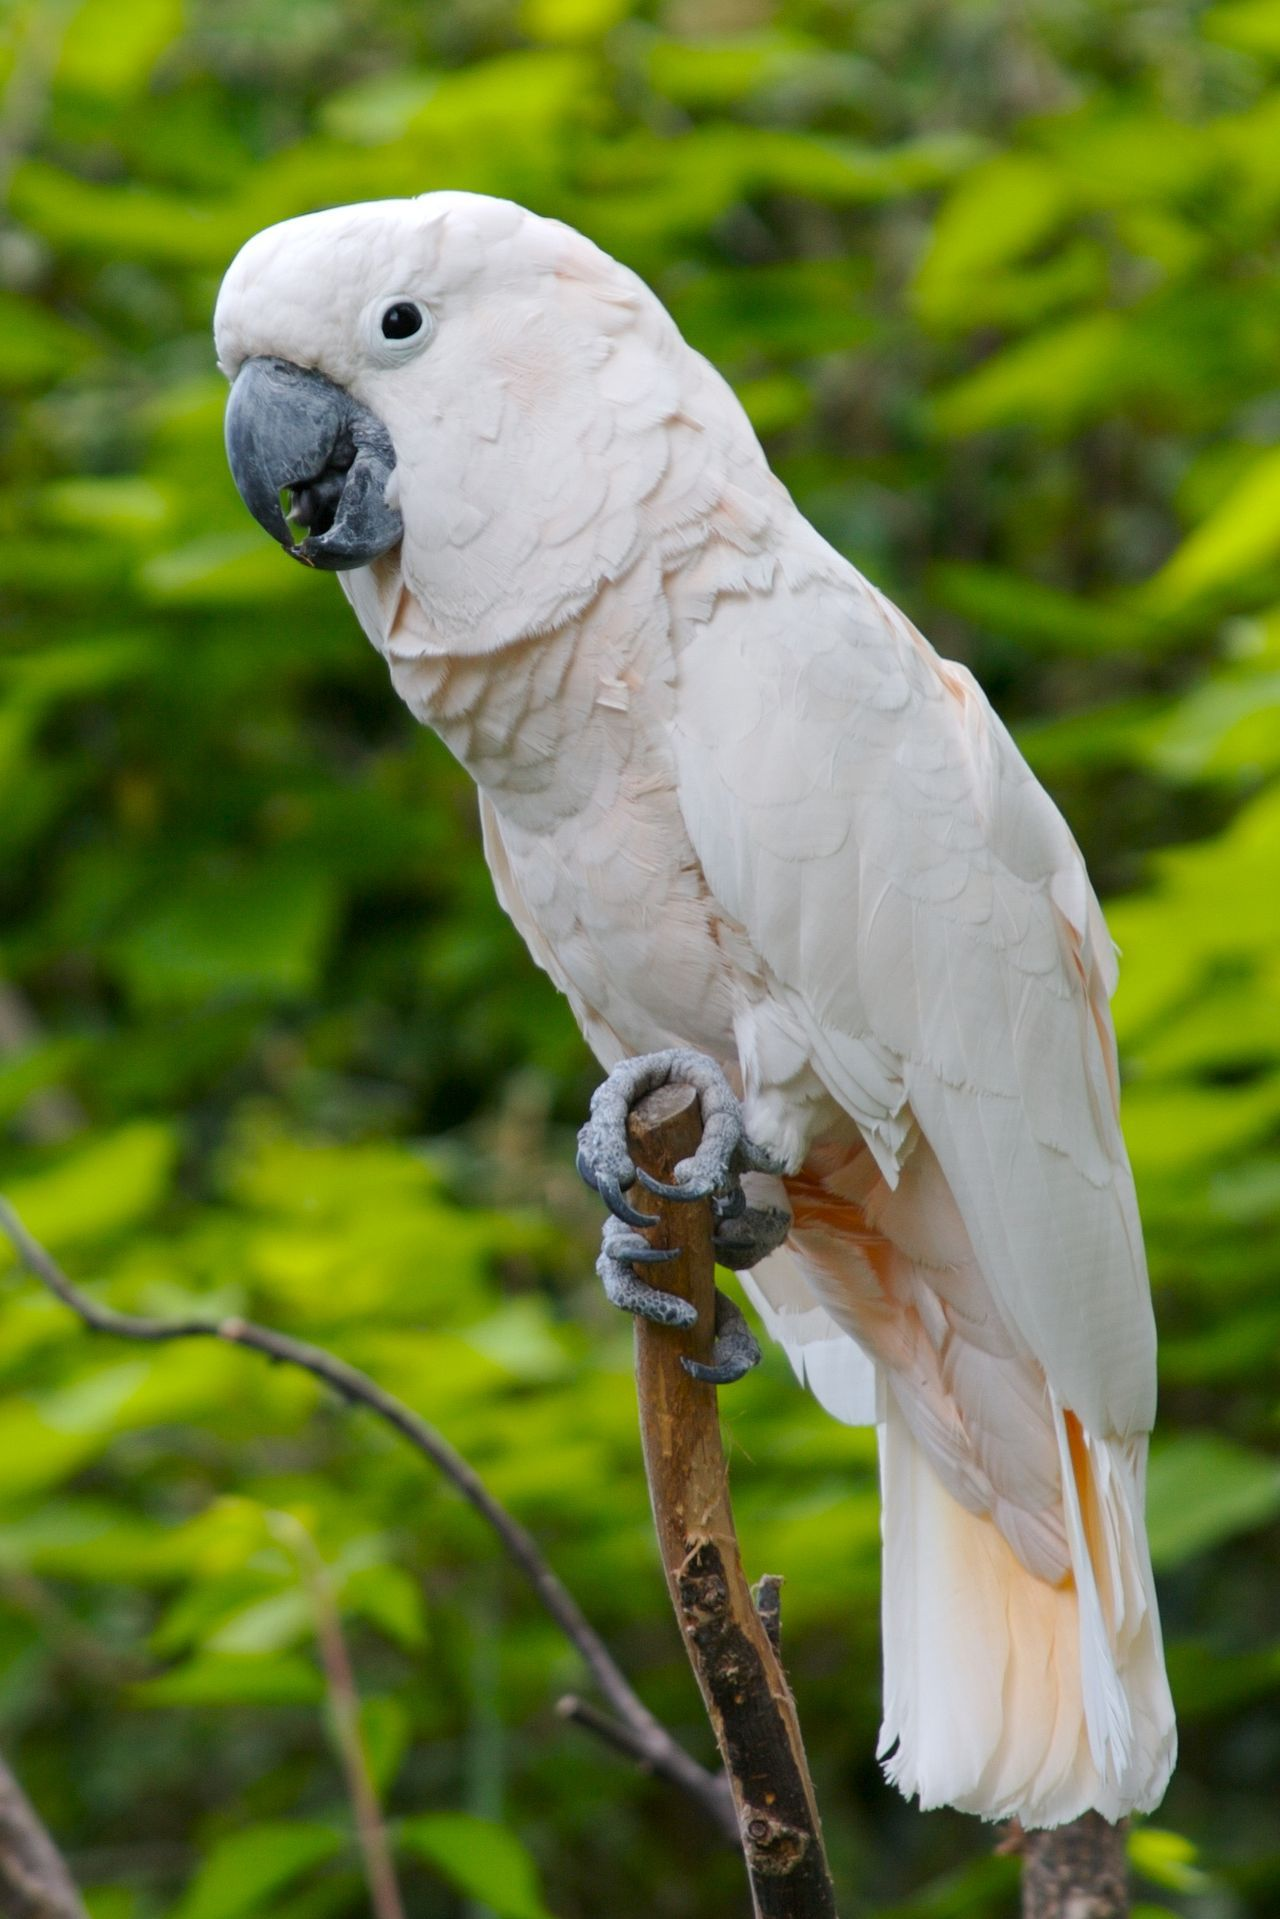 Moluccan Cockatoo, also known as Salmoncrested cockatoo